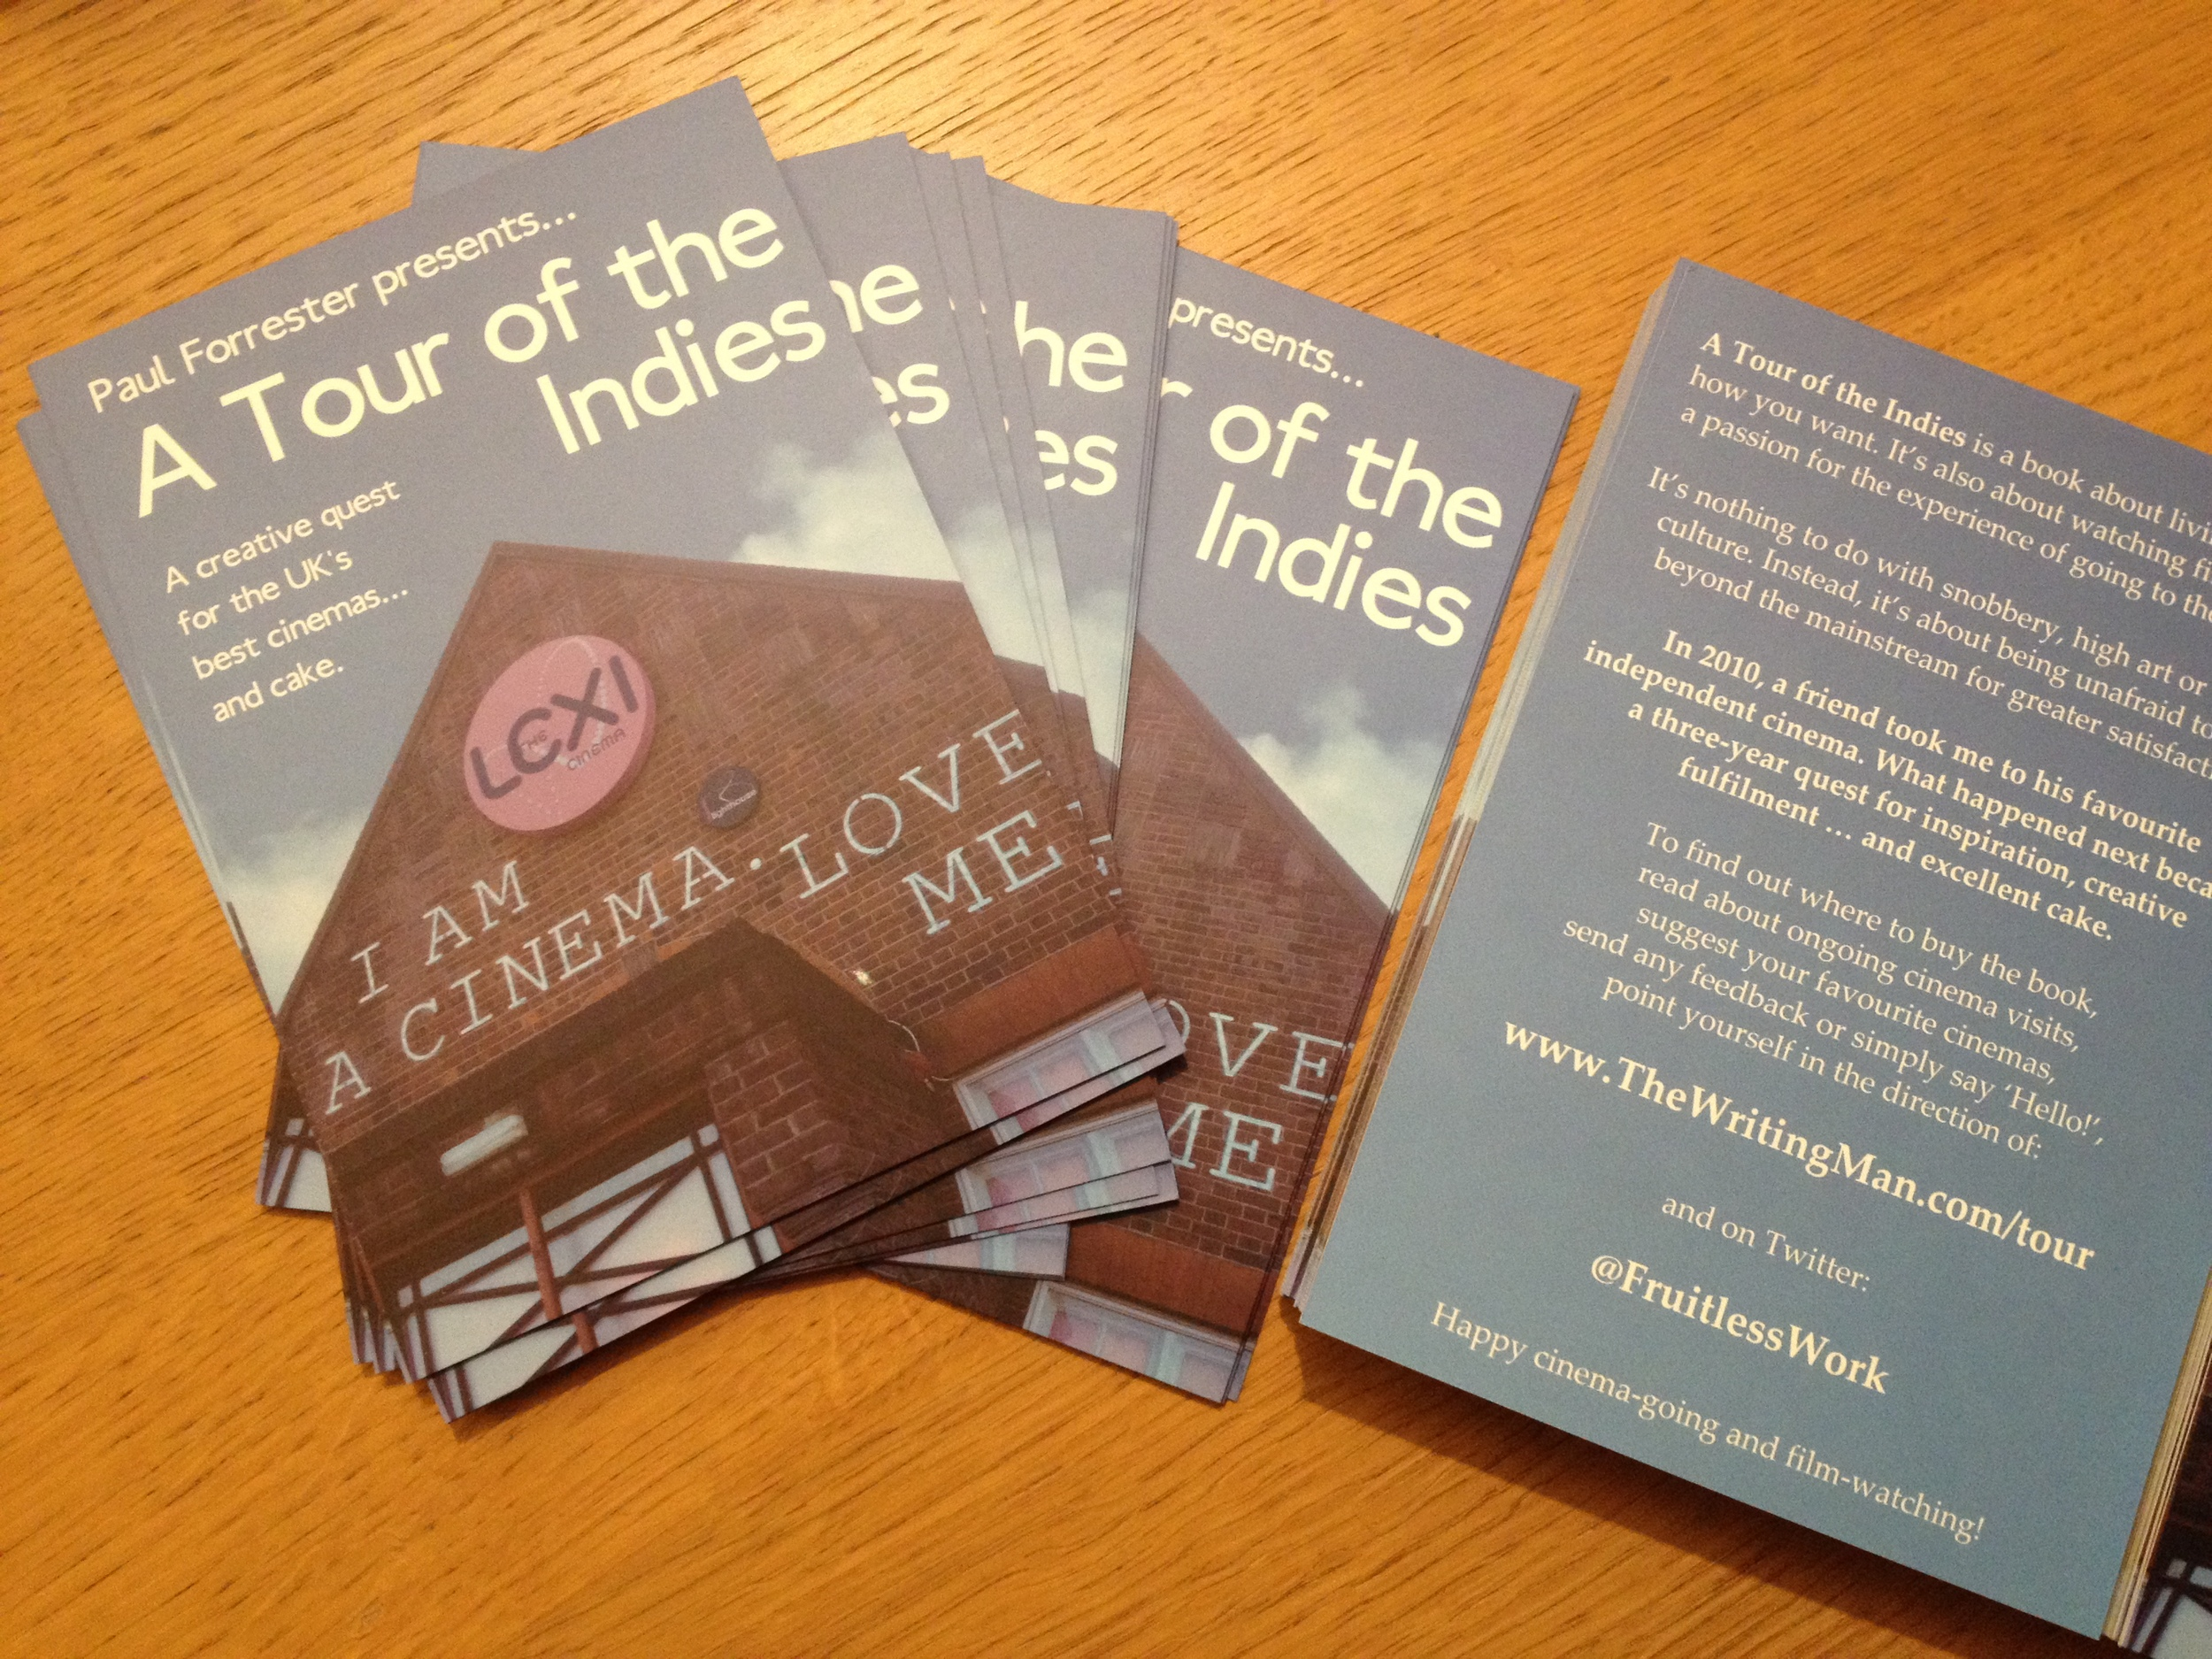 A Tour of the Indies  promotional postcards (photograph by Paul Forrester)